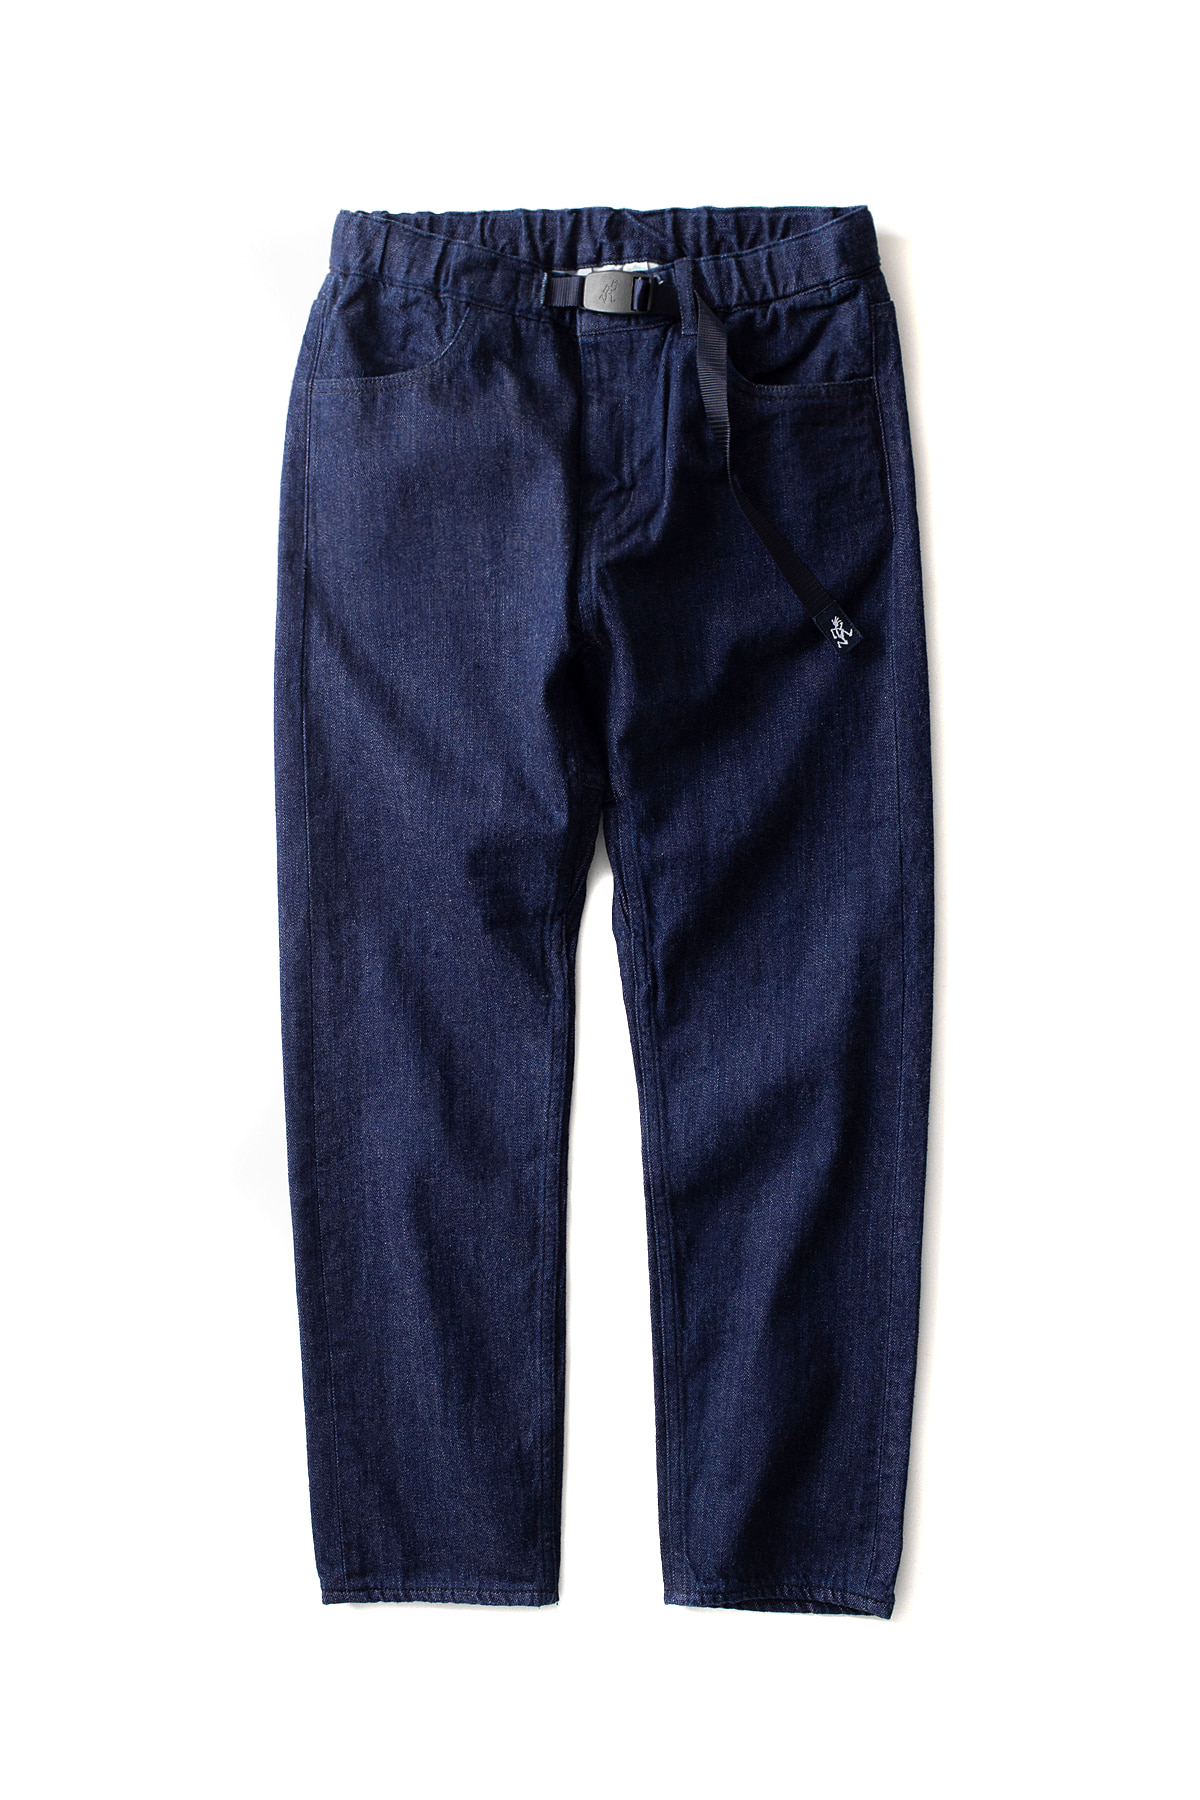 Gramicci x Ordinary fits : Ankle Denim Pants (One Wash)